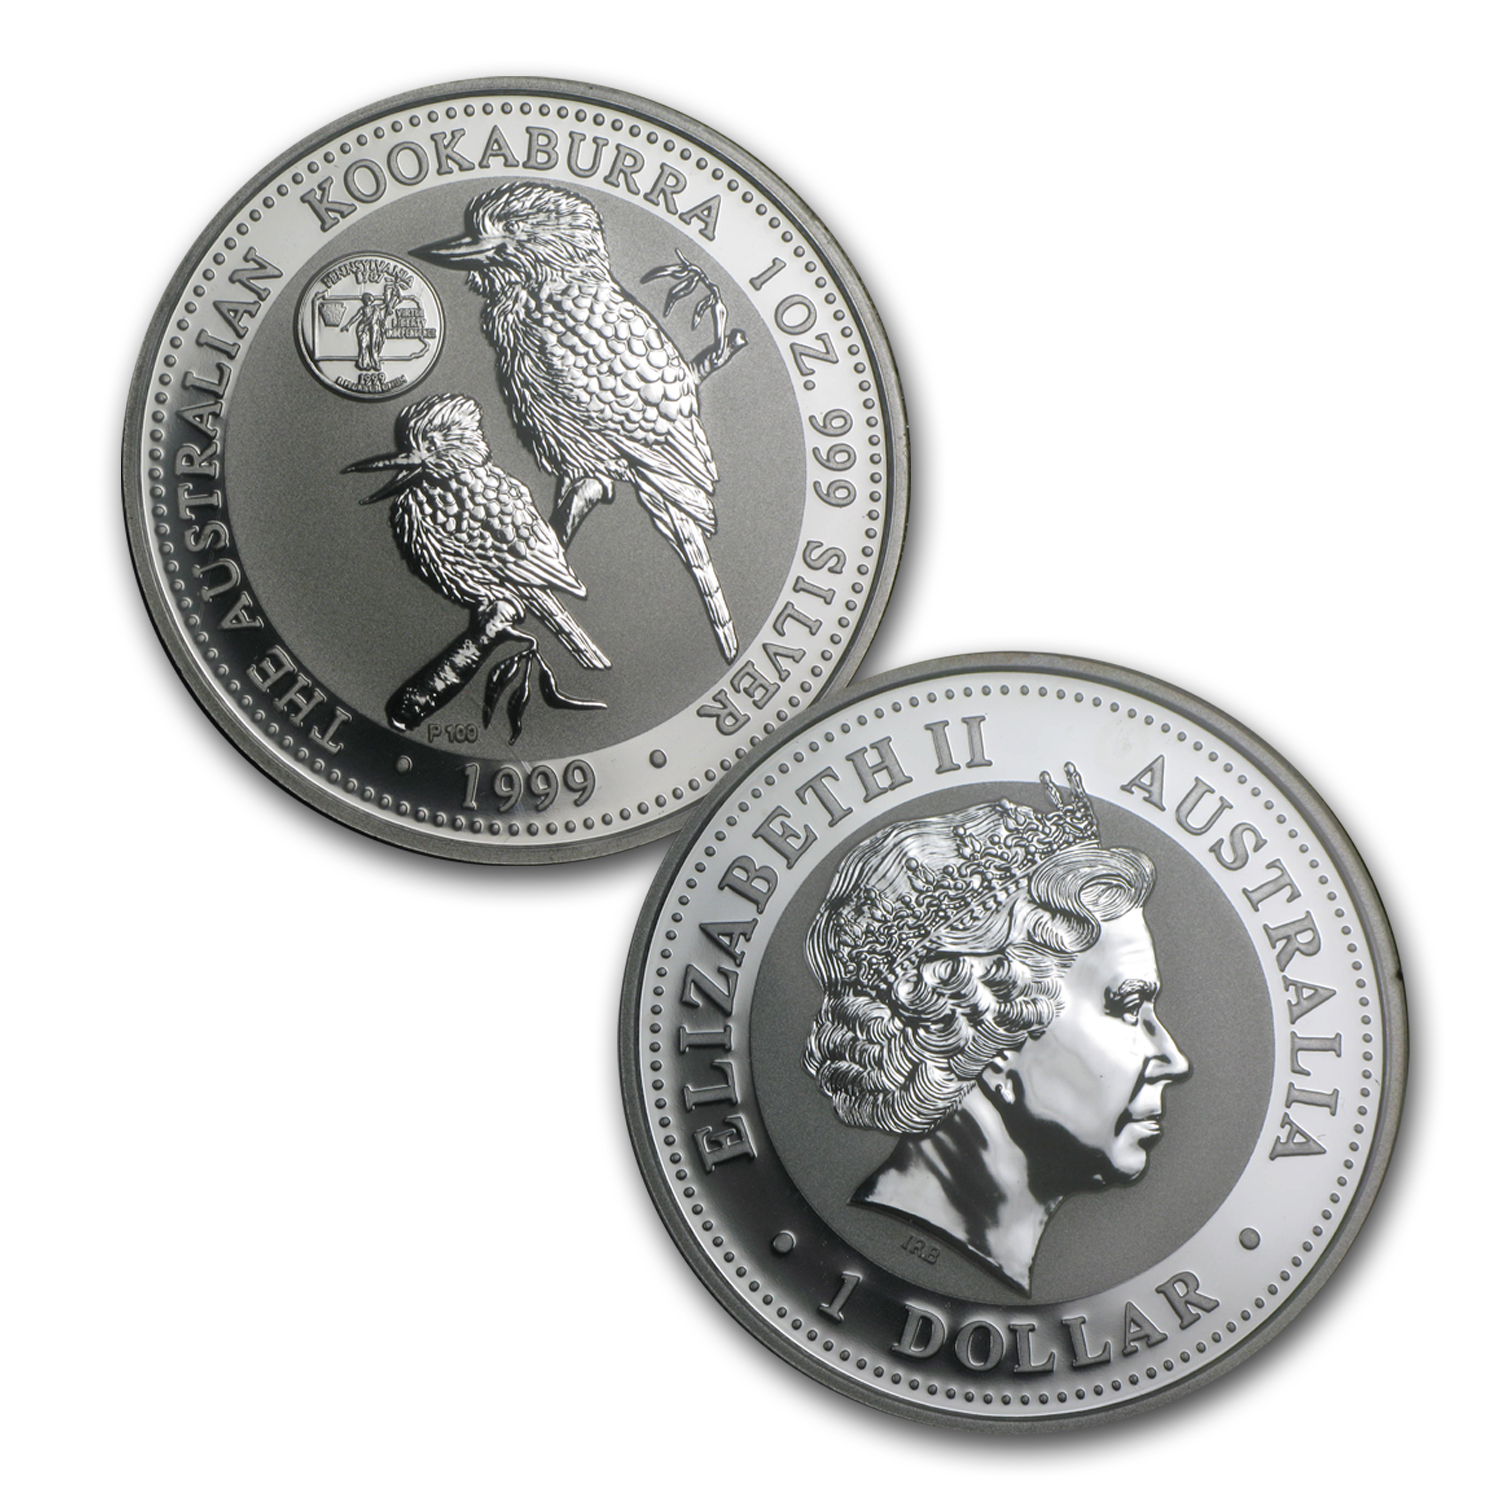 1999 2-Piece 1 oz Silver Kookaburra & Pennsylvania Quarter Set BU